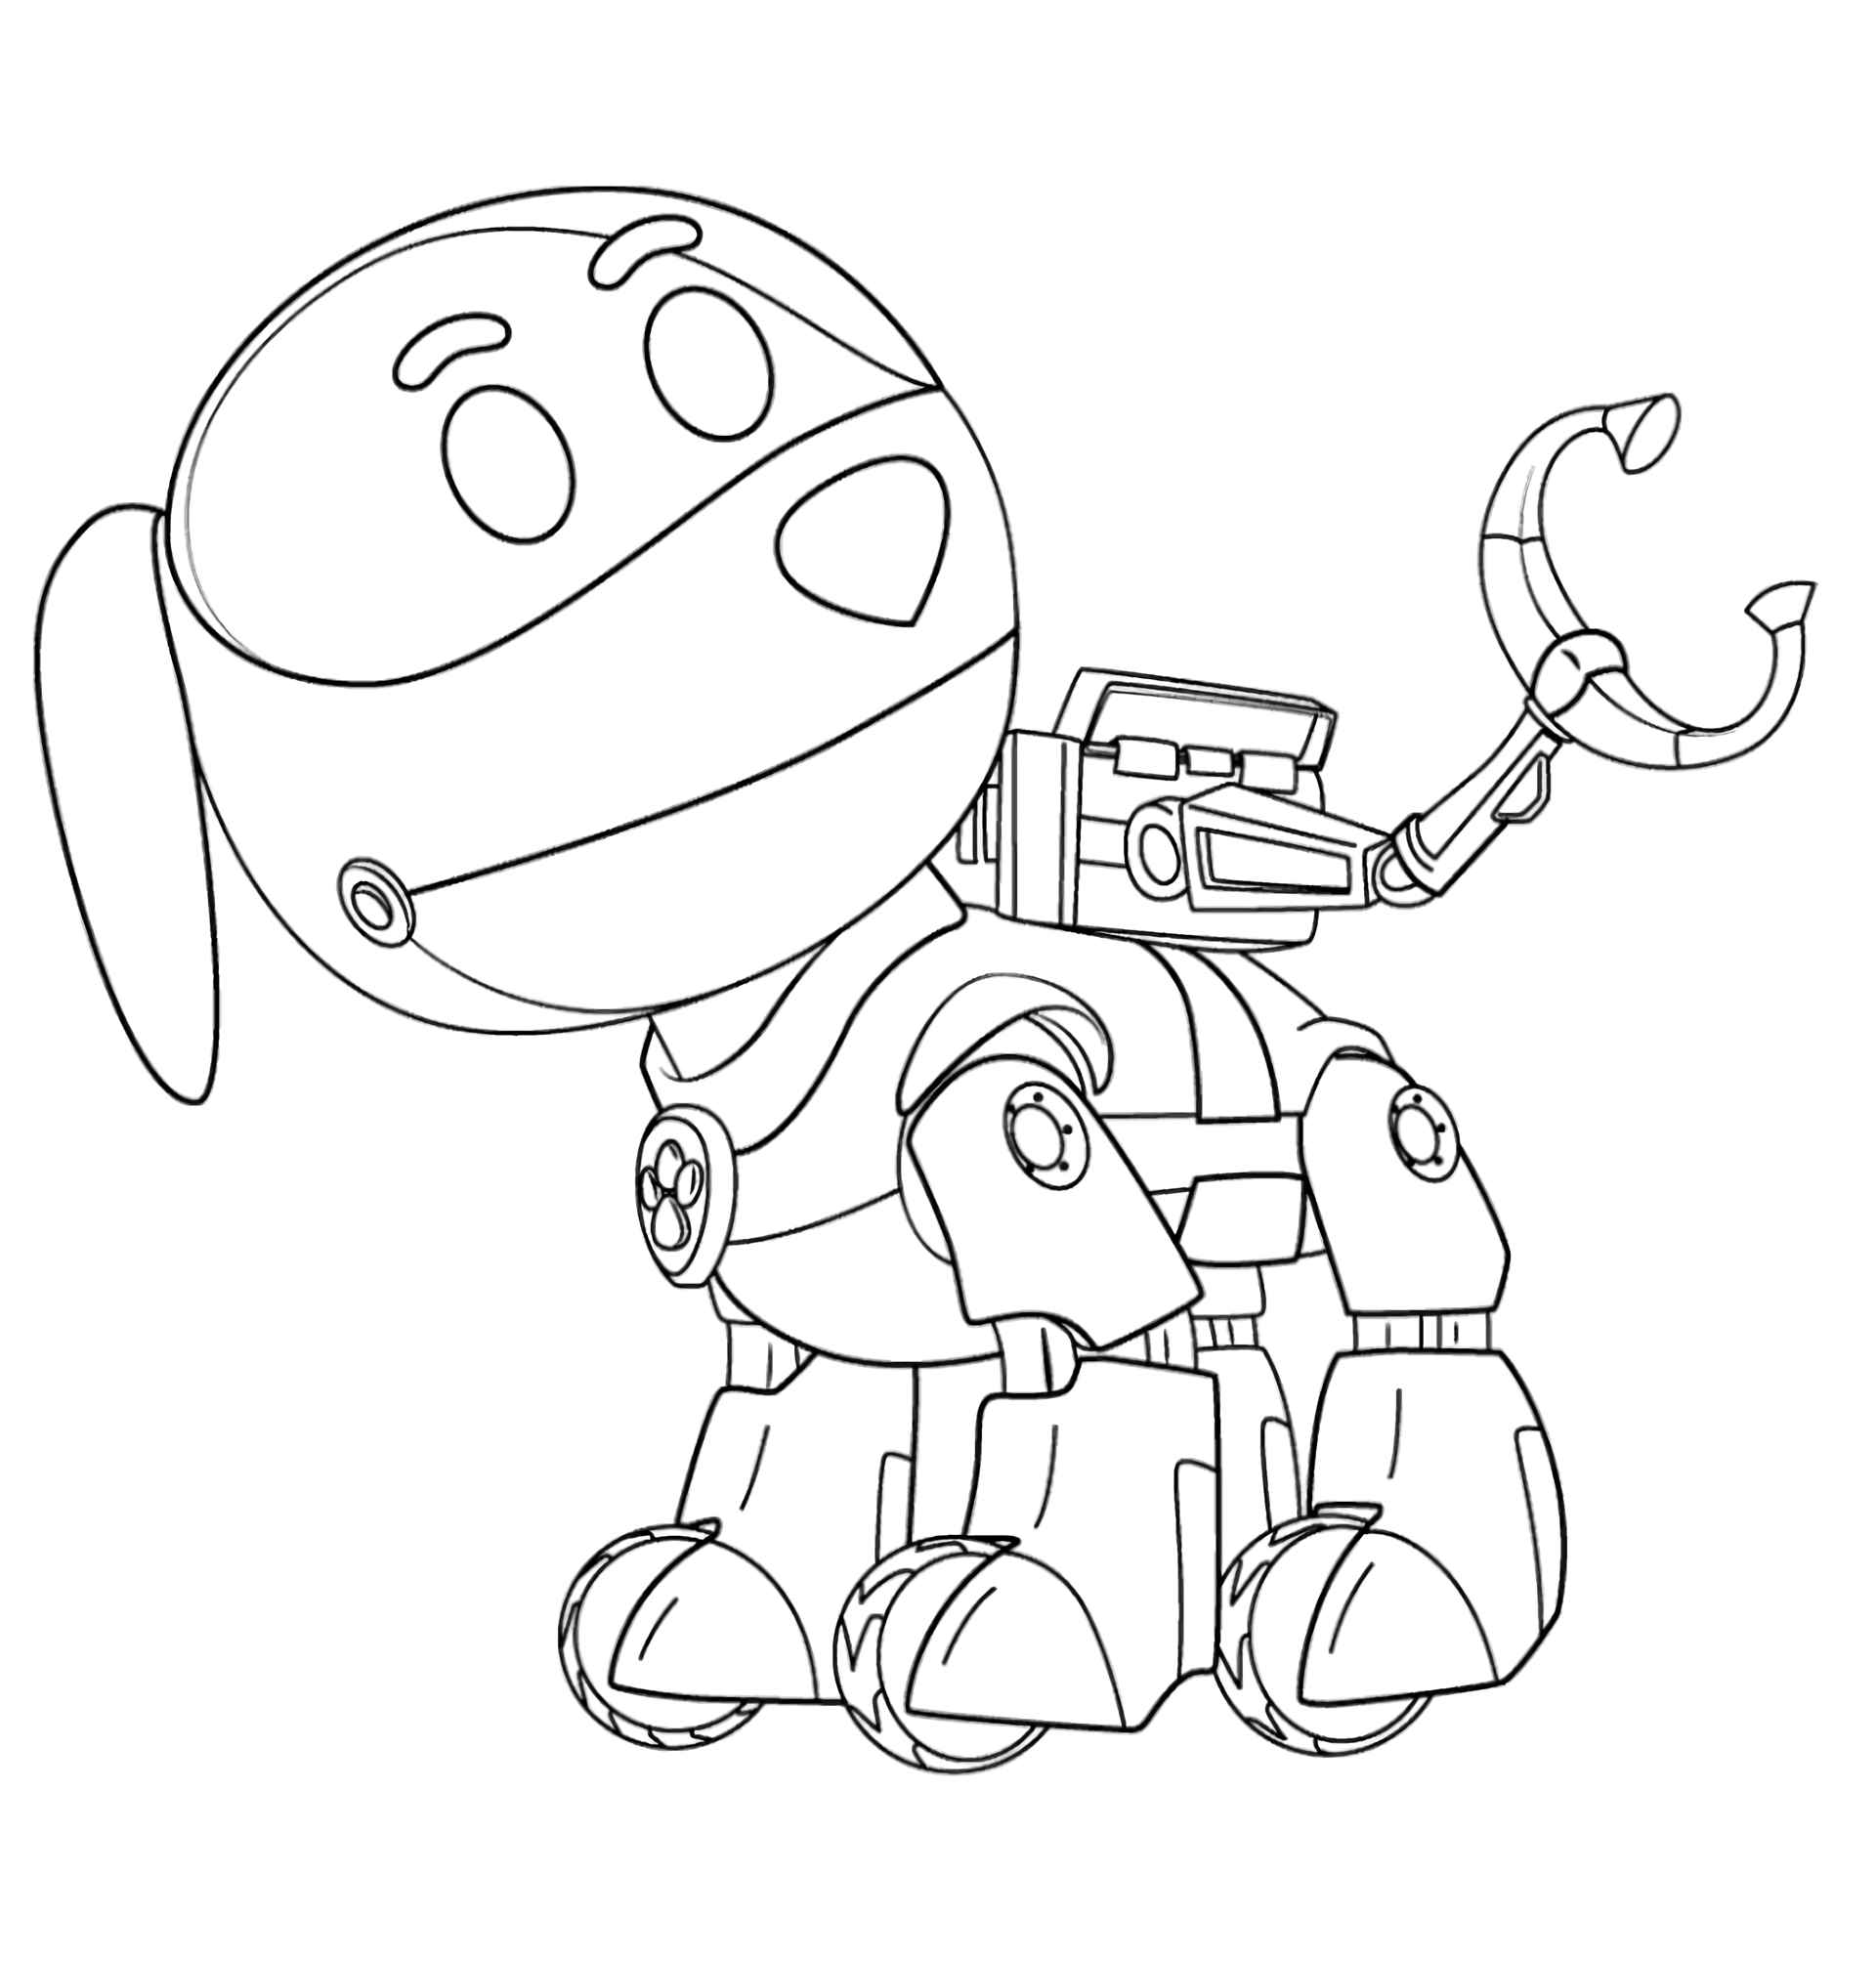 Coloring Page Of Paw Patrol Robot Dog